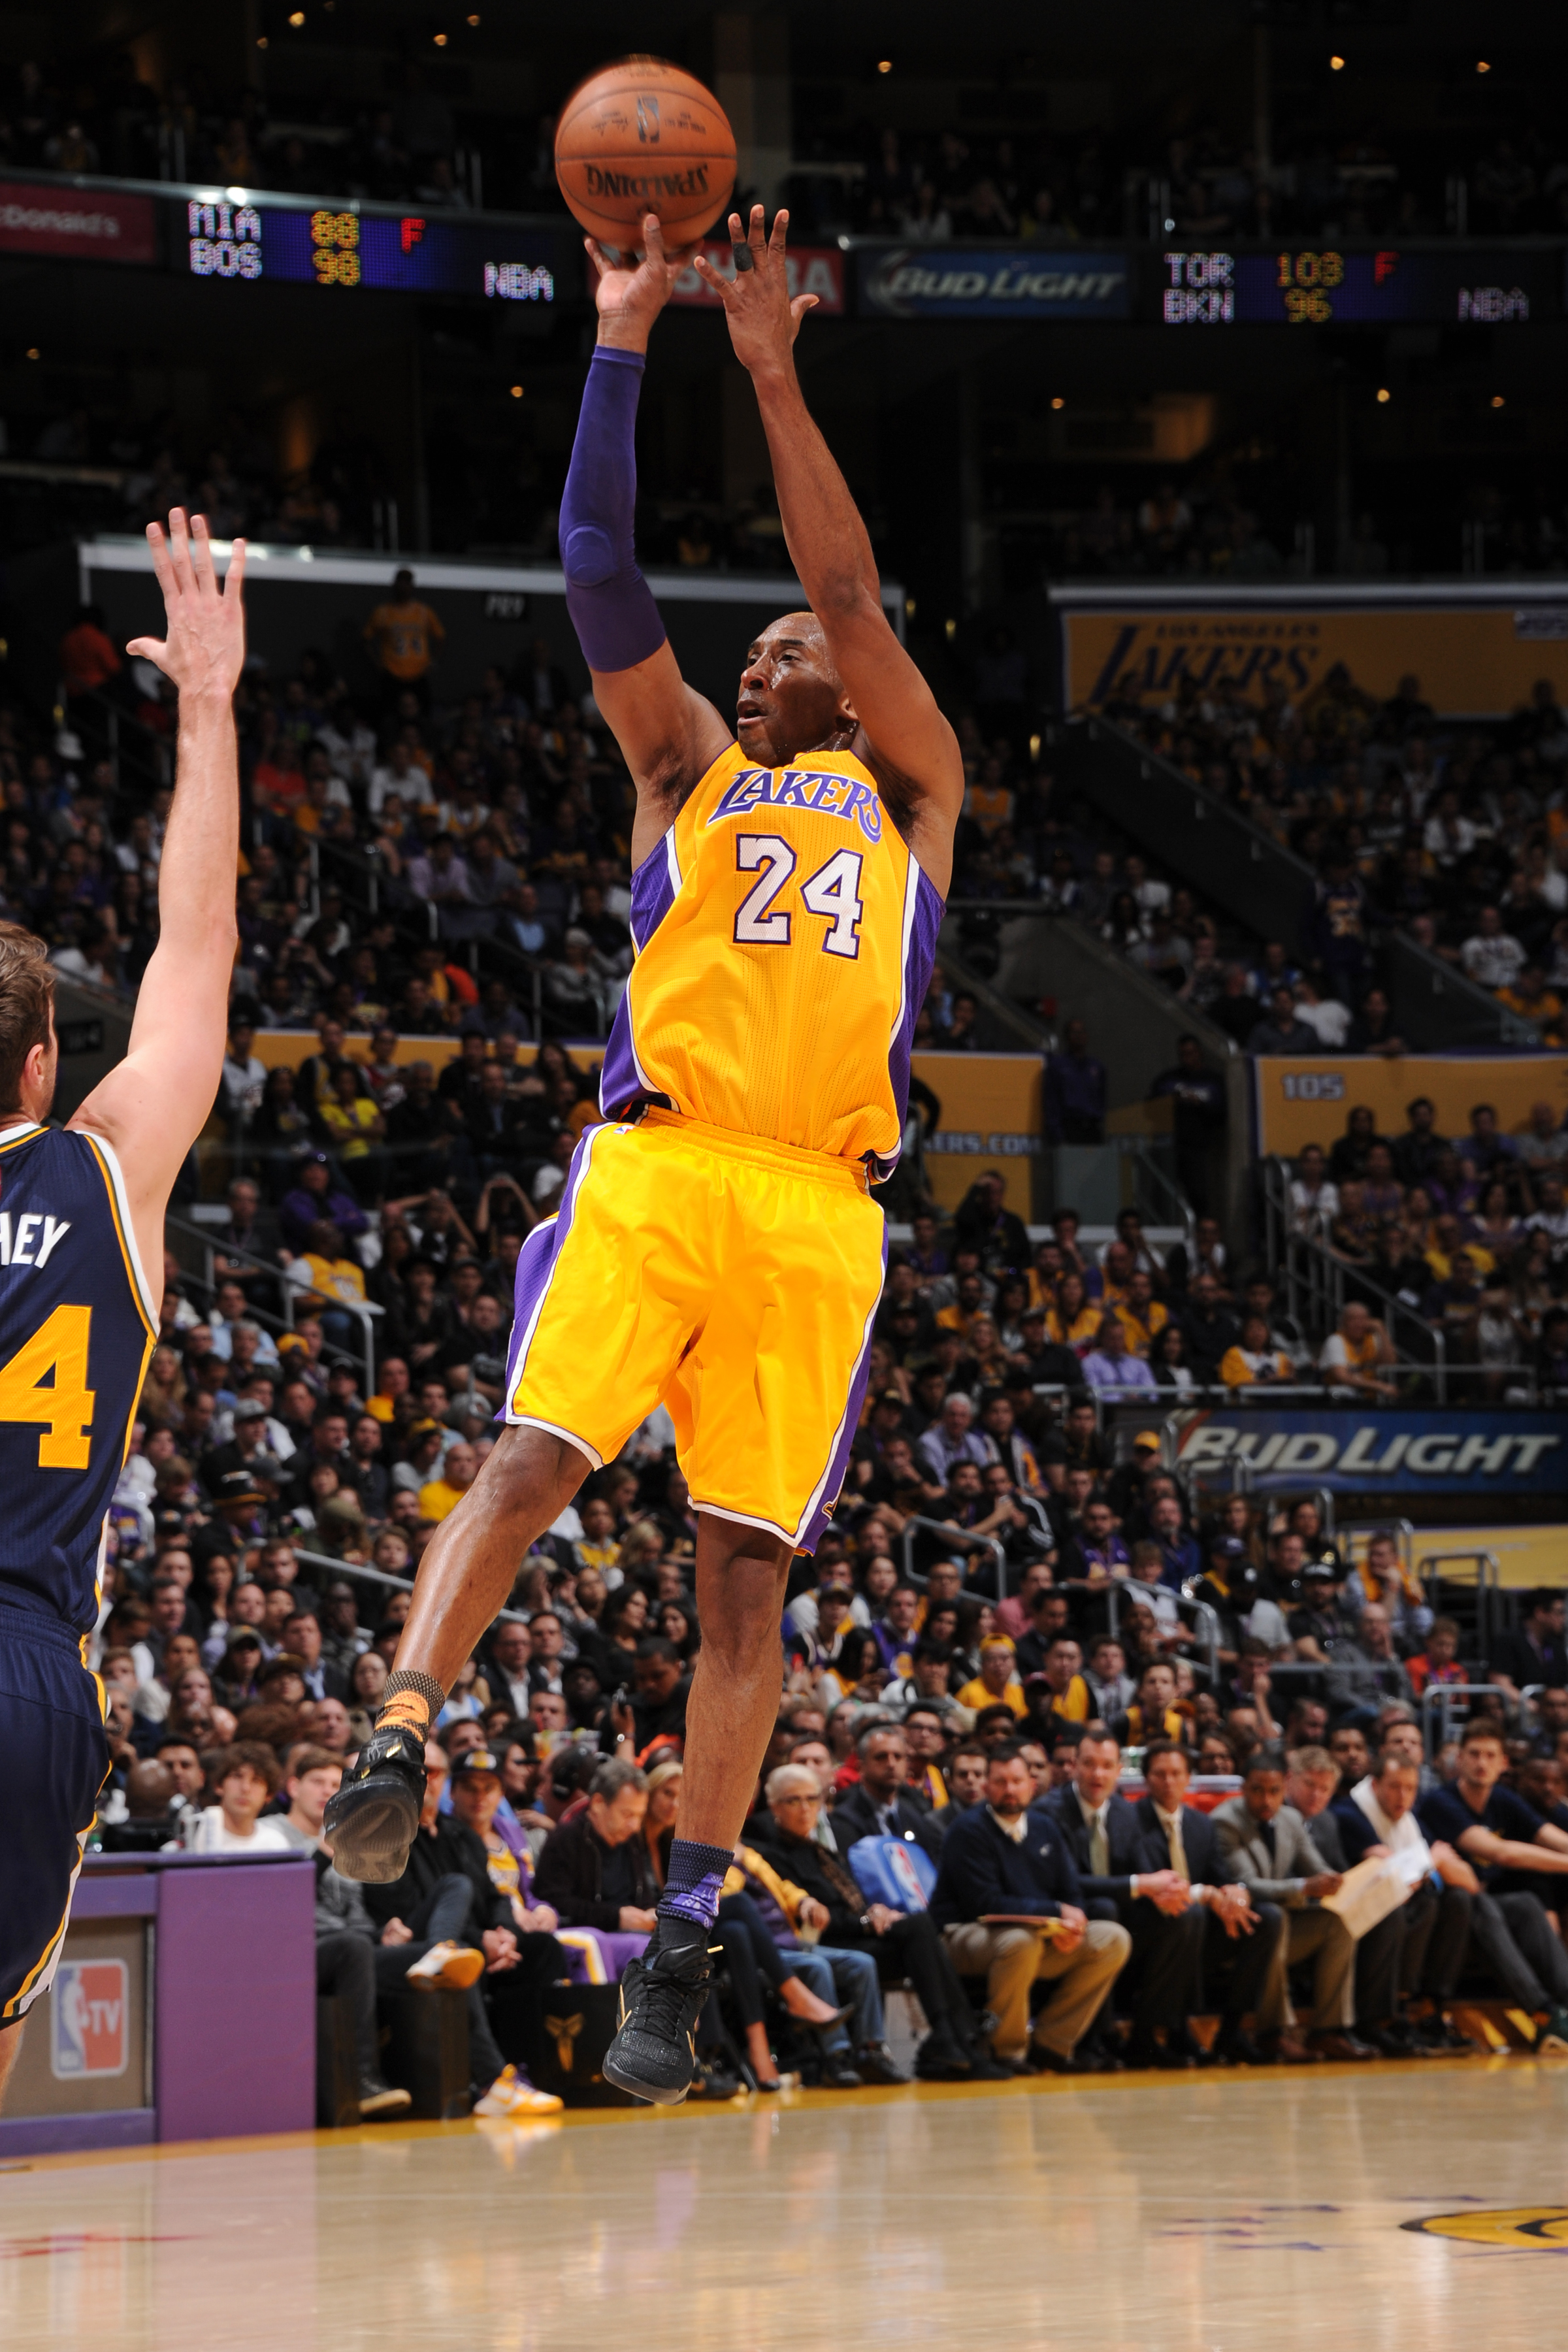 LOS ANGELES, CA - APRIL 13:  Kobe Bryant #24 of the Los Angeles Lakers shoots the ball against the Utah Jazz on April 13, 2016 at Staples Center in Los Angeles, California. (Photo by Andrew D. Bernstein/NBAE via Getty Images)